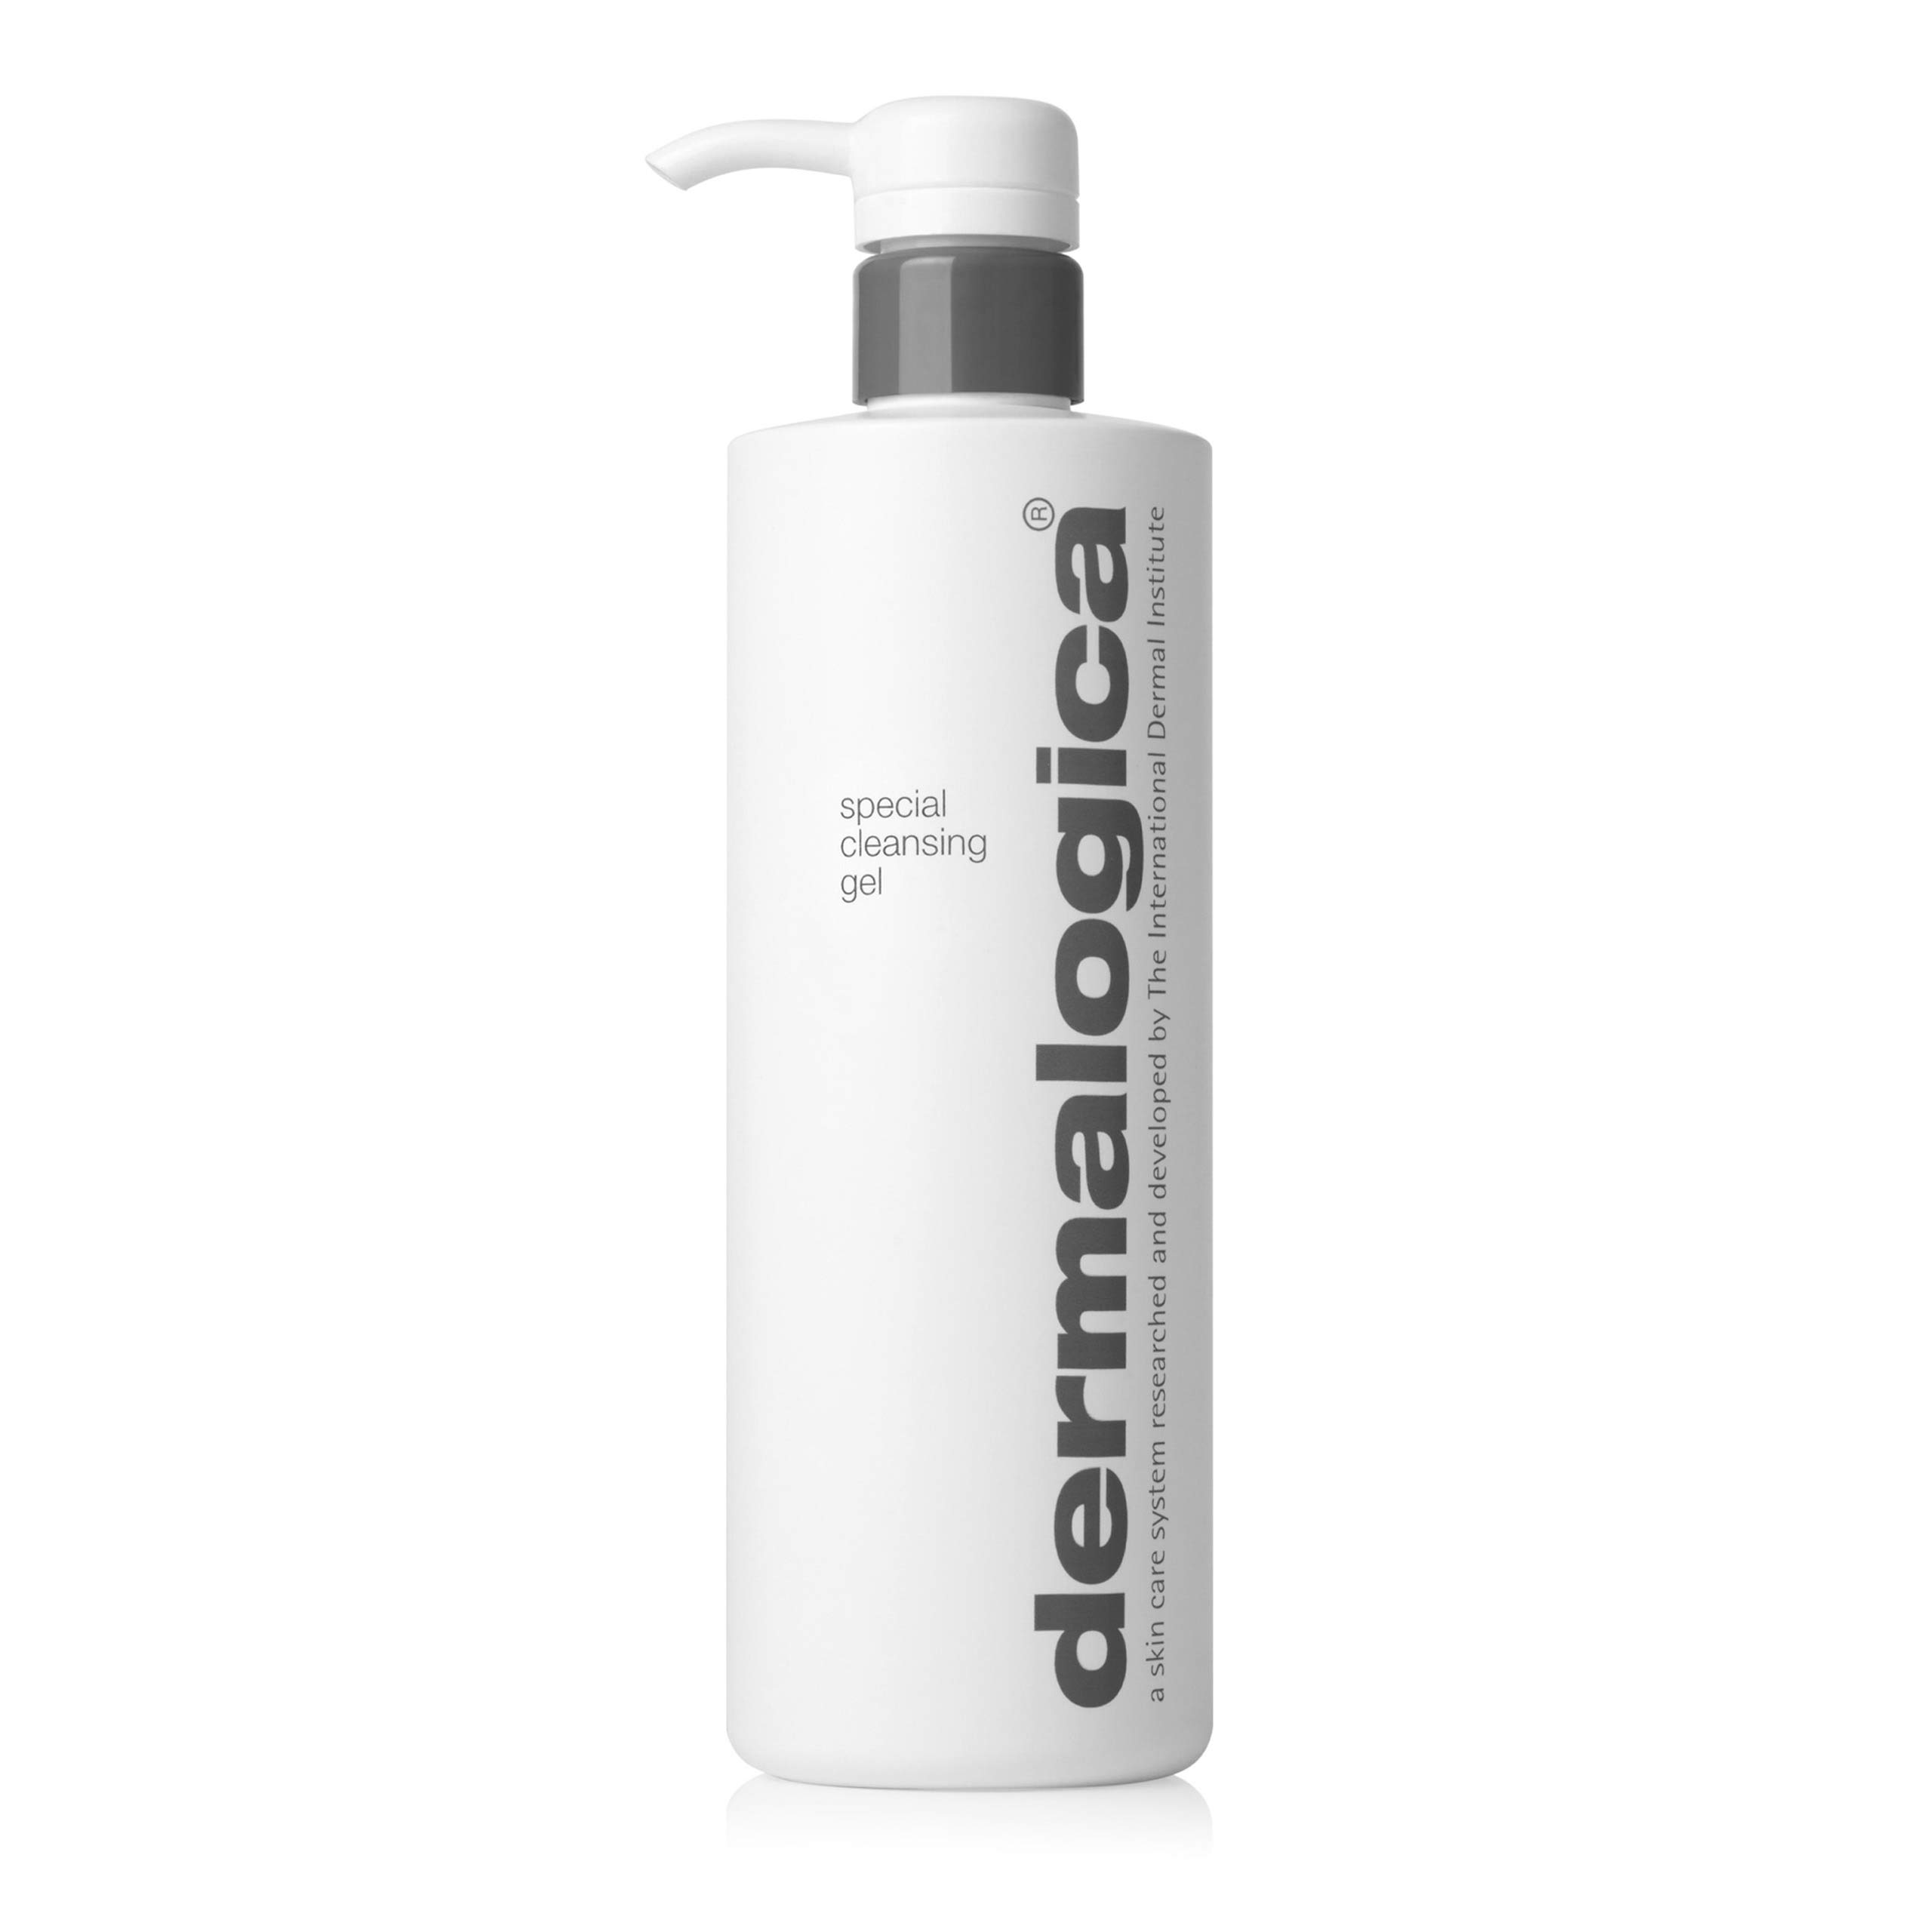 Dermalogica Special Cleansing Gel - Gentle-Foaming Face Wash Gel for Women and Men - Leaves Skin Feeling Smooth And Clean